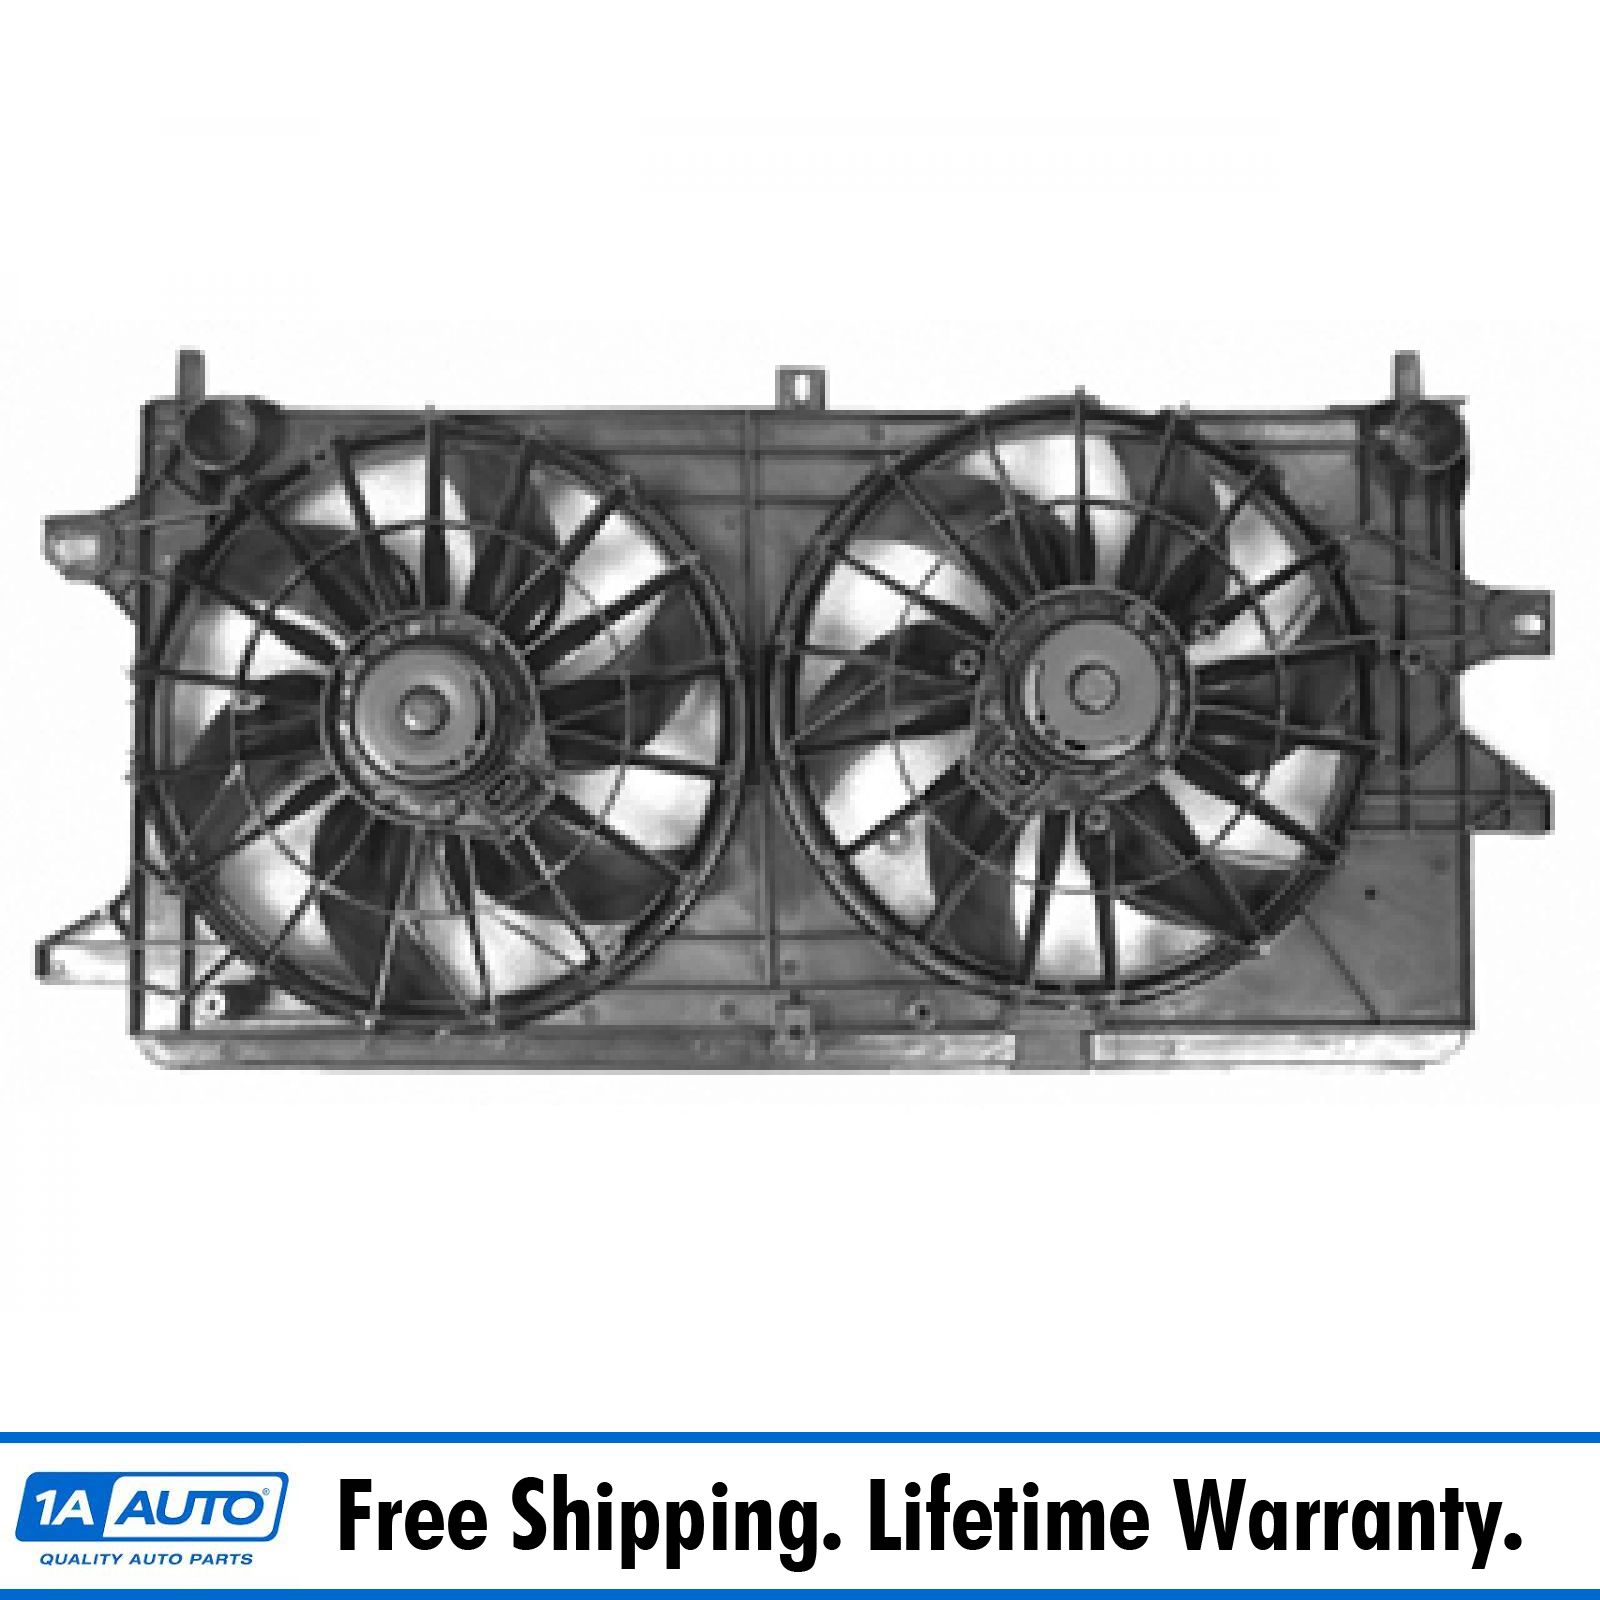 GM3115180 Front COOLING FAN For Pontiac,Chevrolet,Buick Impala 89019107 New